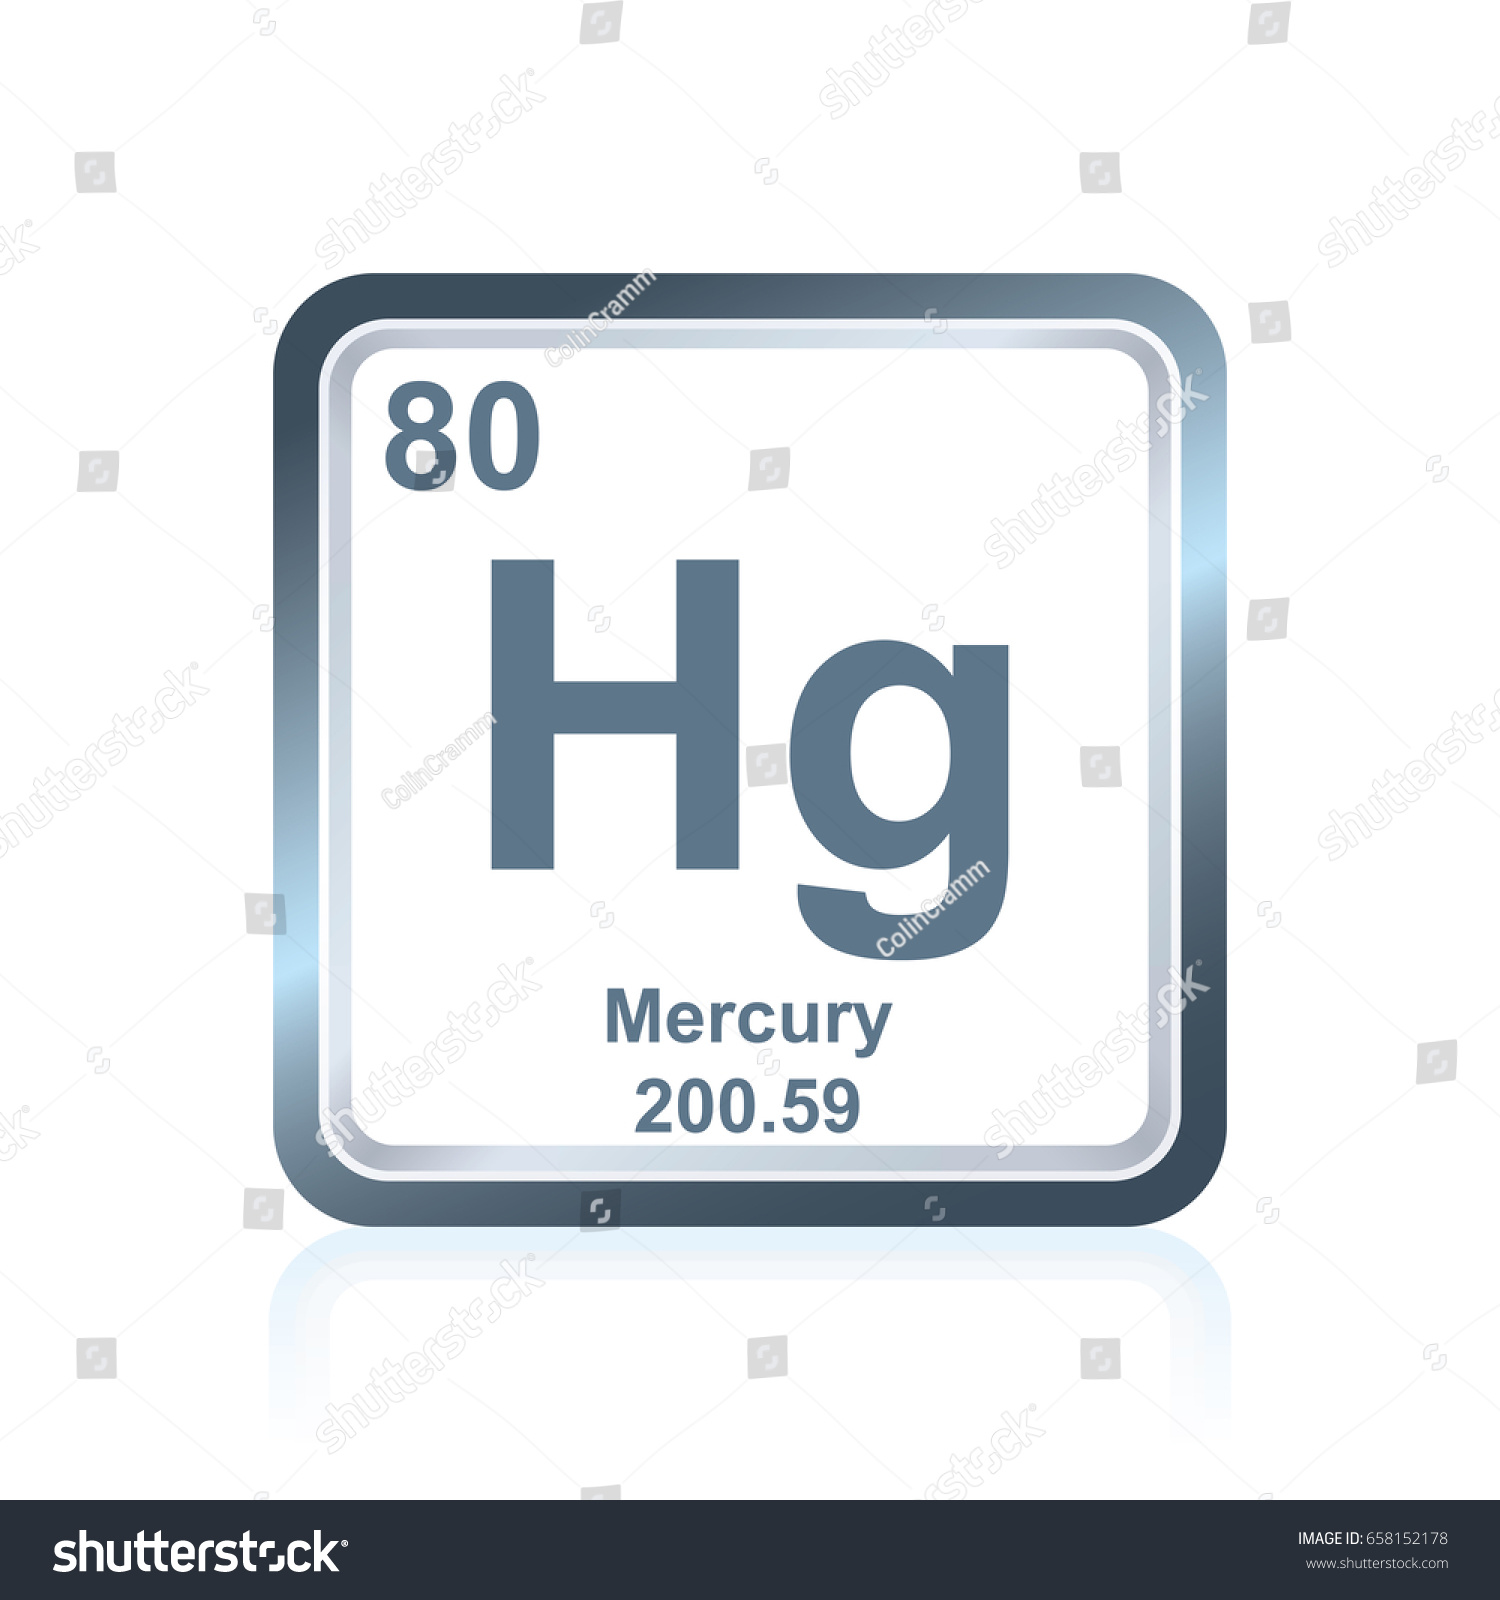 Symbol chemical element mercury seen on stock vector 658152178 symbol of chemical element mercury as seen on the periodic table of the elements including gamestrikefo Images